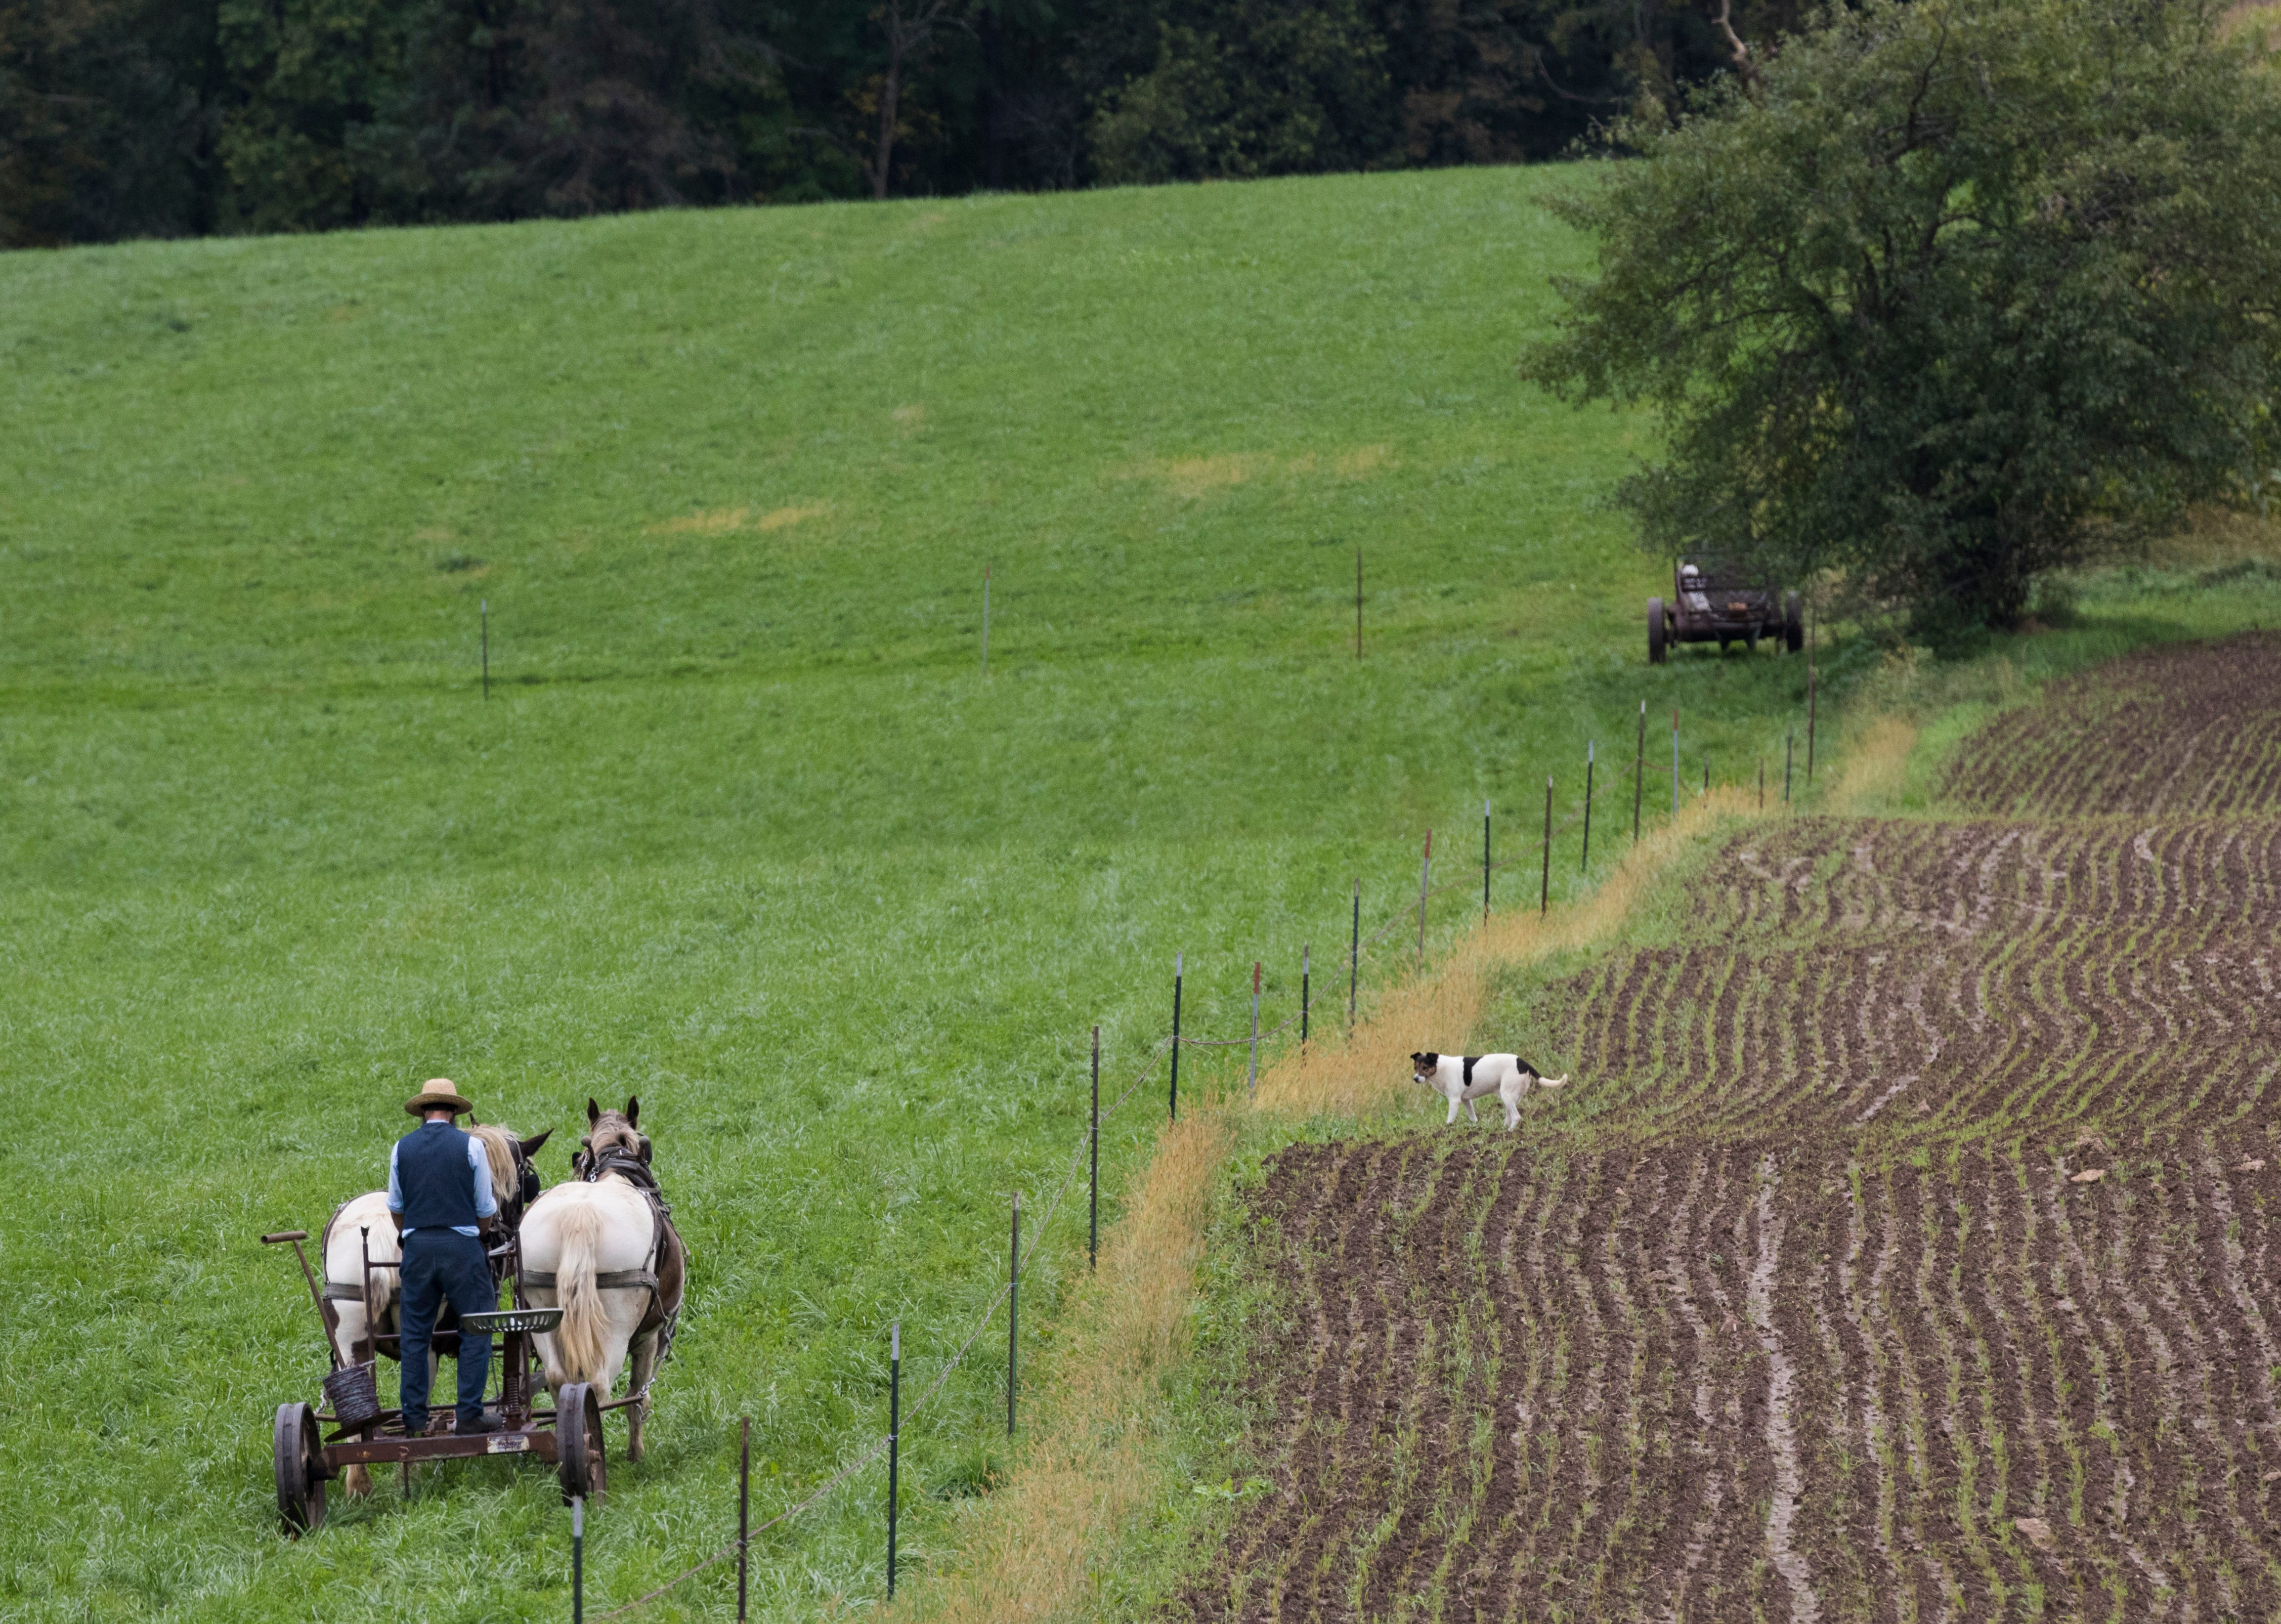 An Amish farmer makes his way to work on a fence along Highway D between Cashton and La Farge.